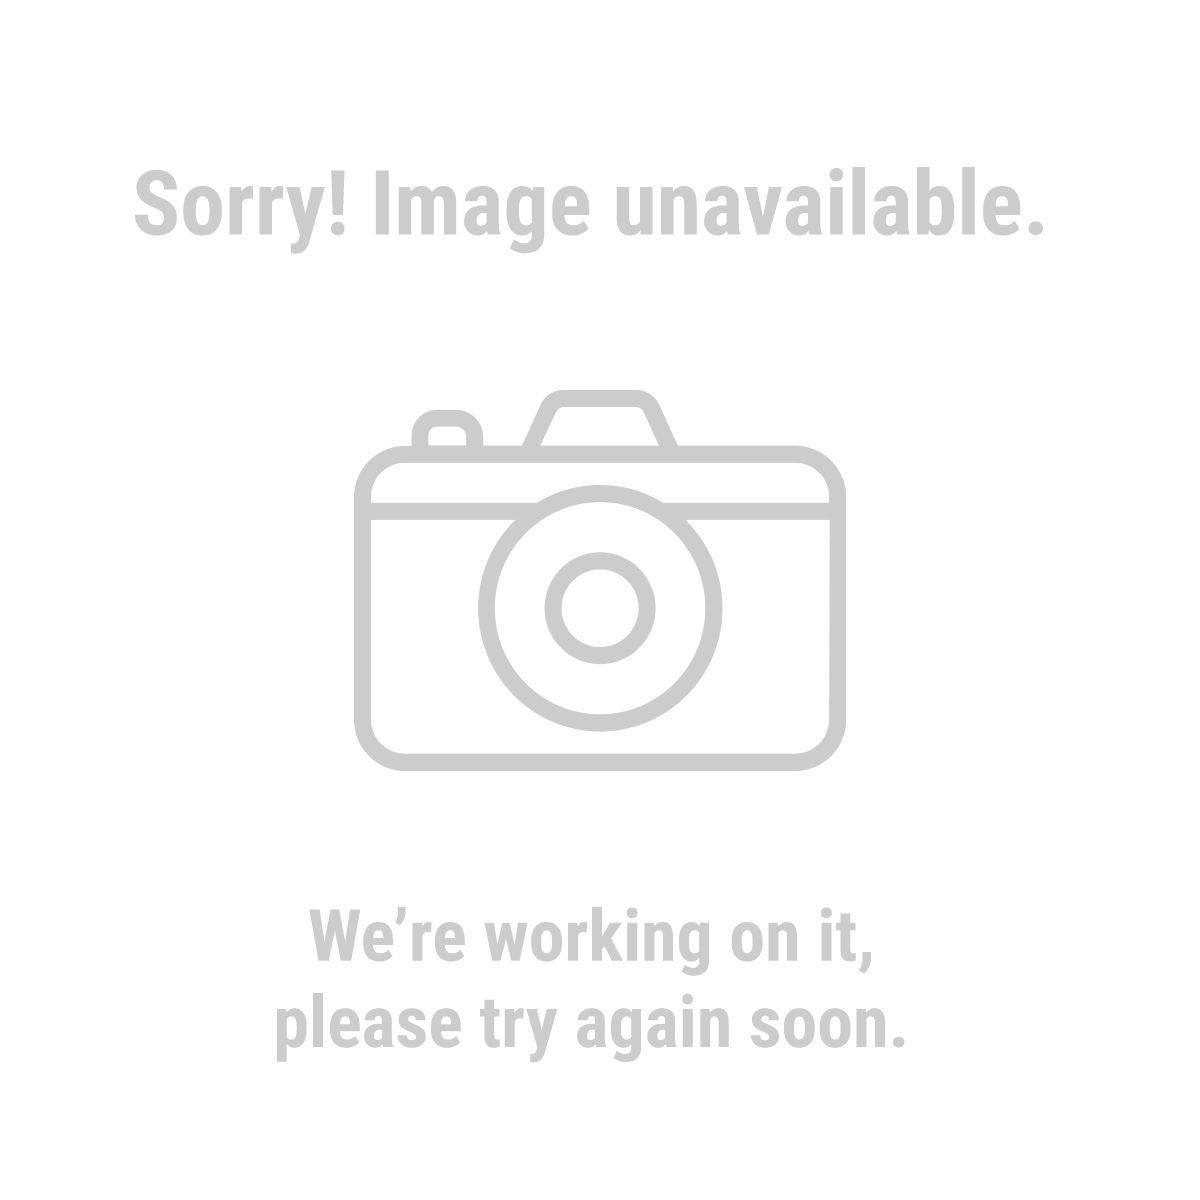 HFT® 60271 25 Ft. x 14 Gauge Outdoor Extension Cord